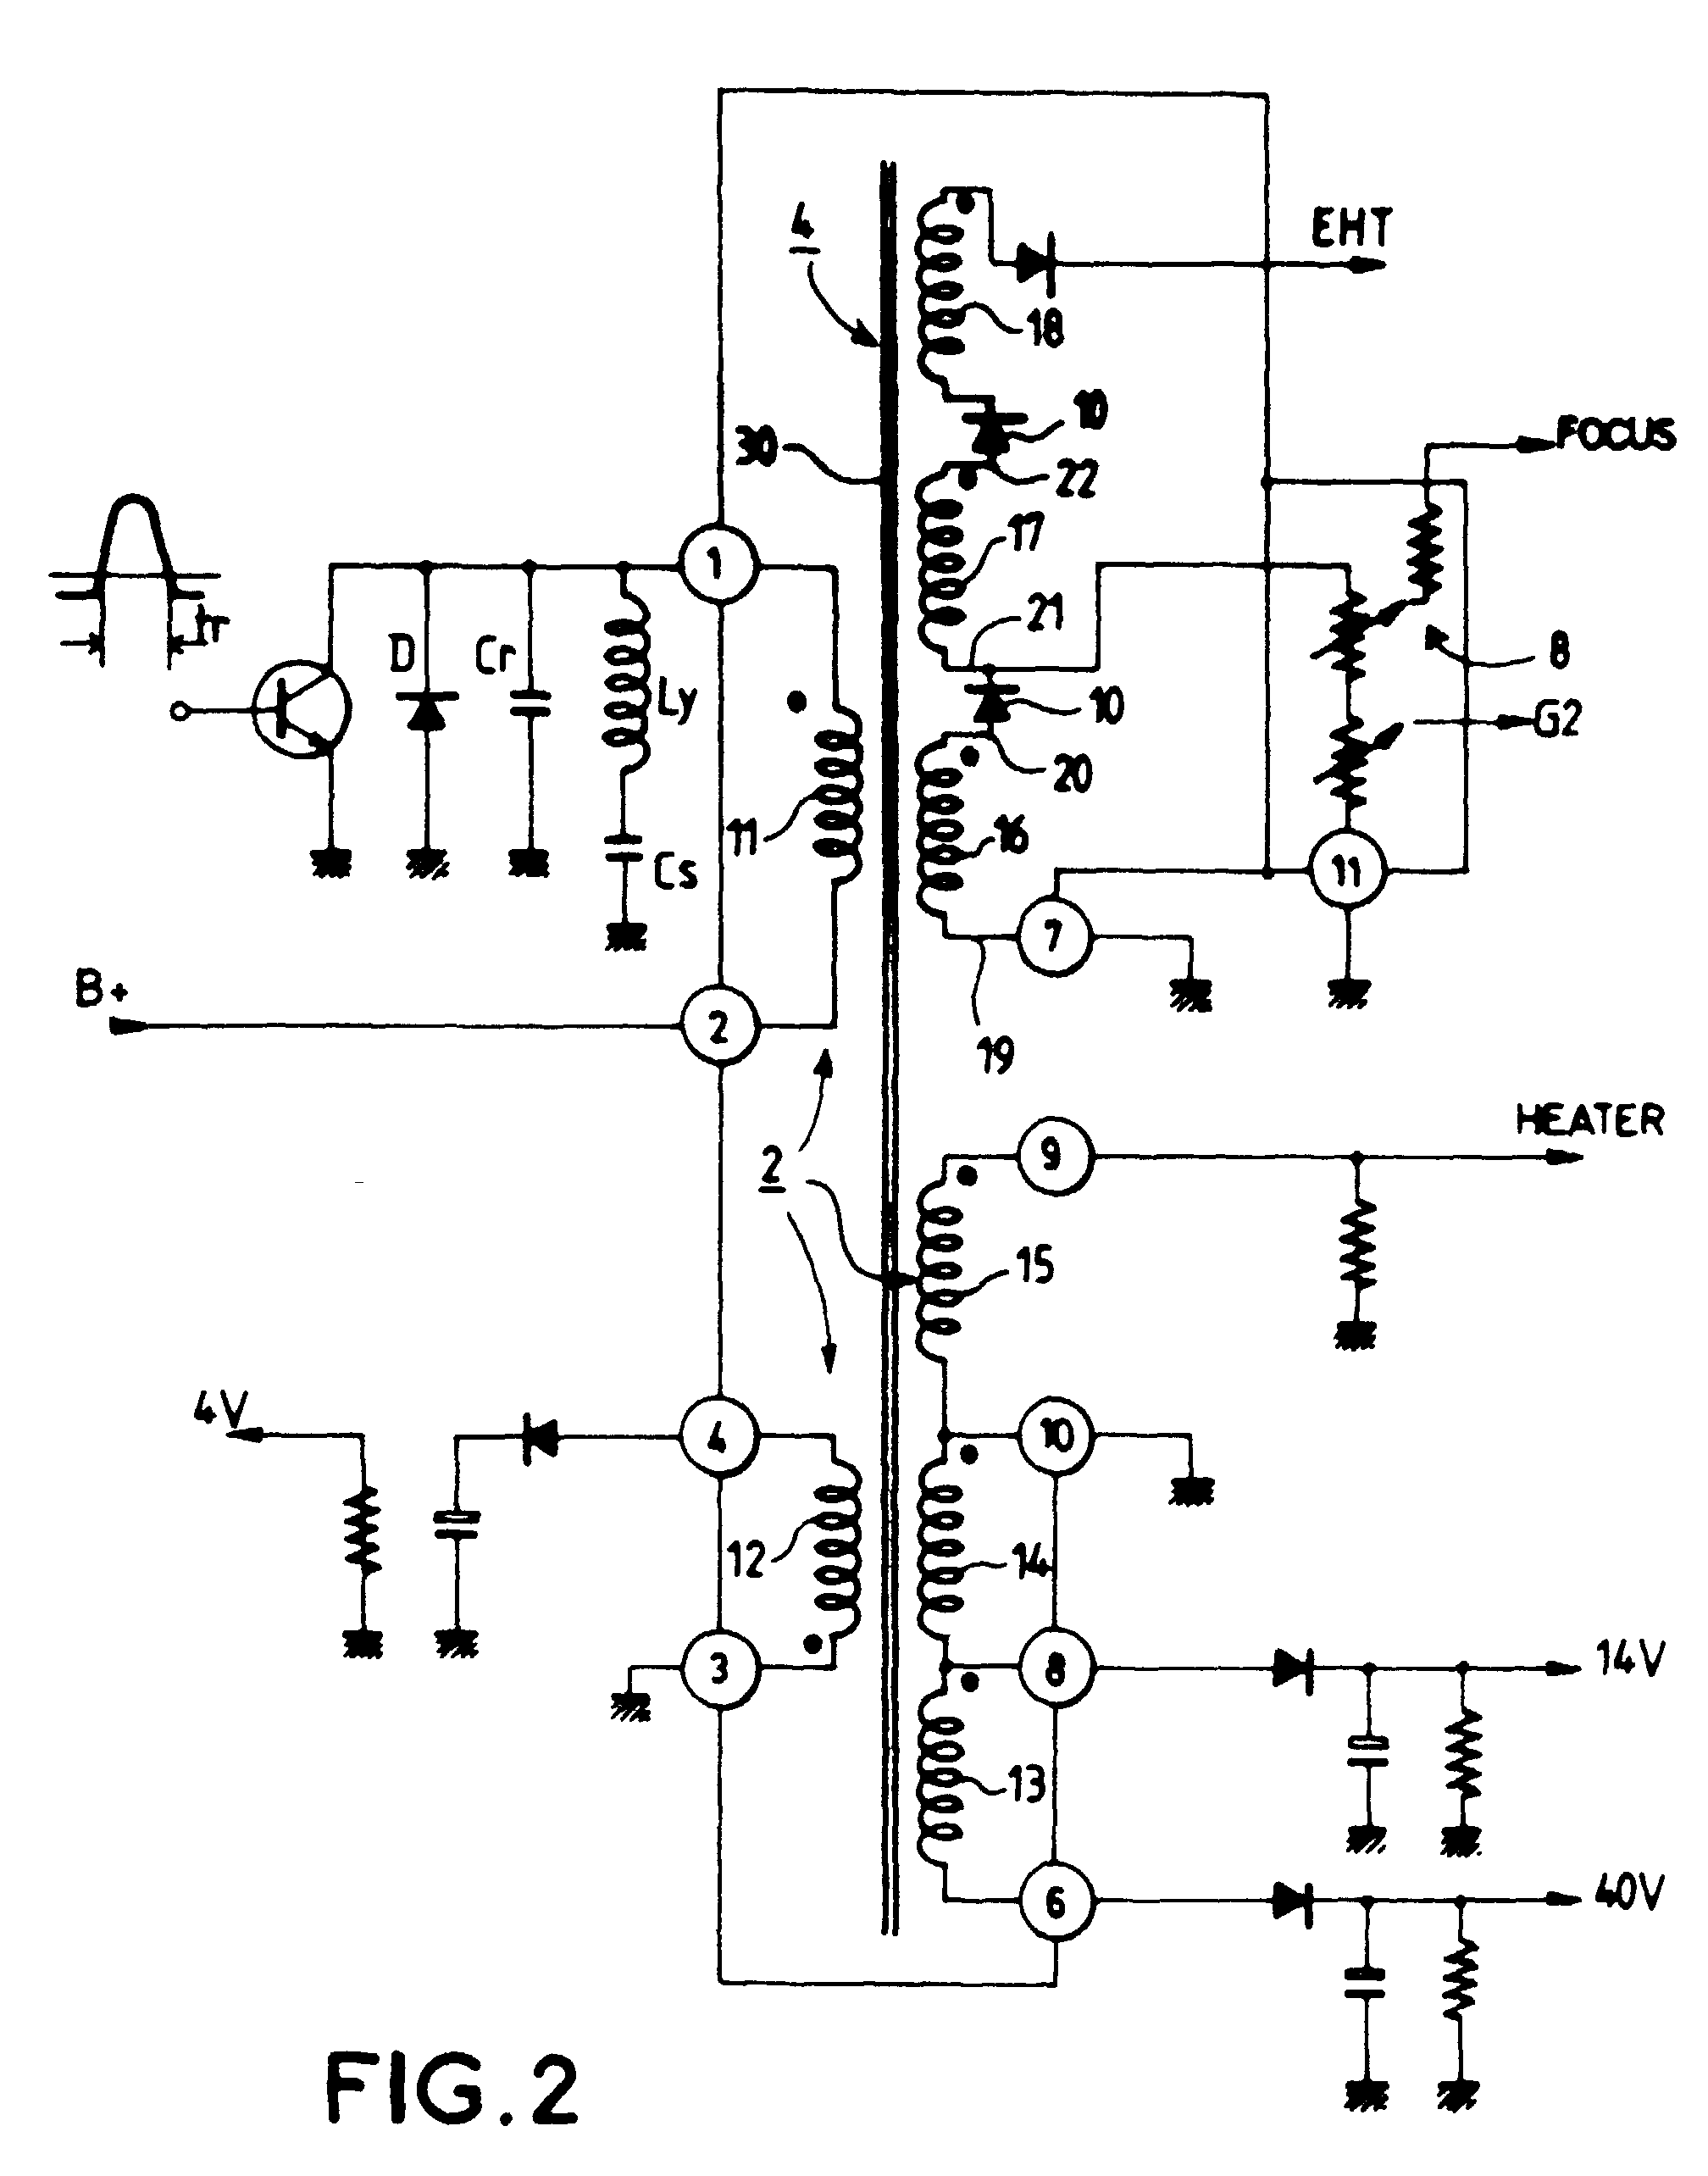 Outstanding Wiring Diagram For Ge Buck Boost Transformer Wiring Diagram For Ge Wiring 101 Mentrastrewellnesstrialsorg